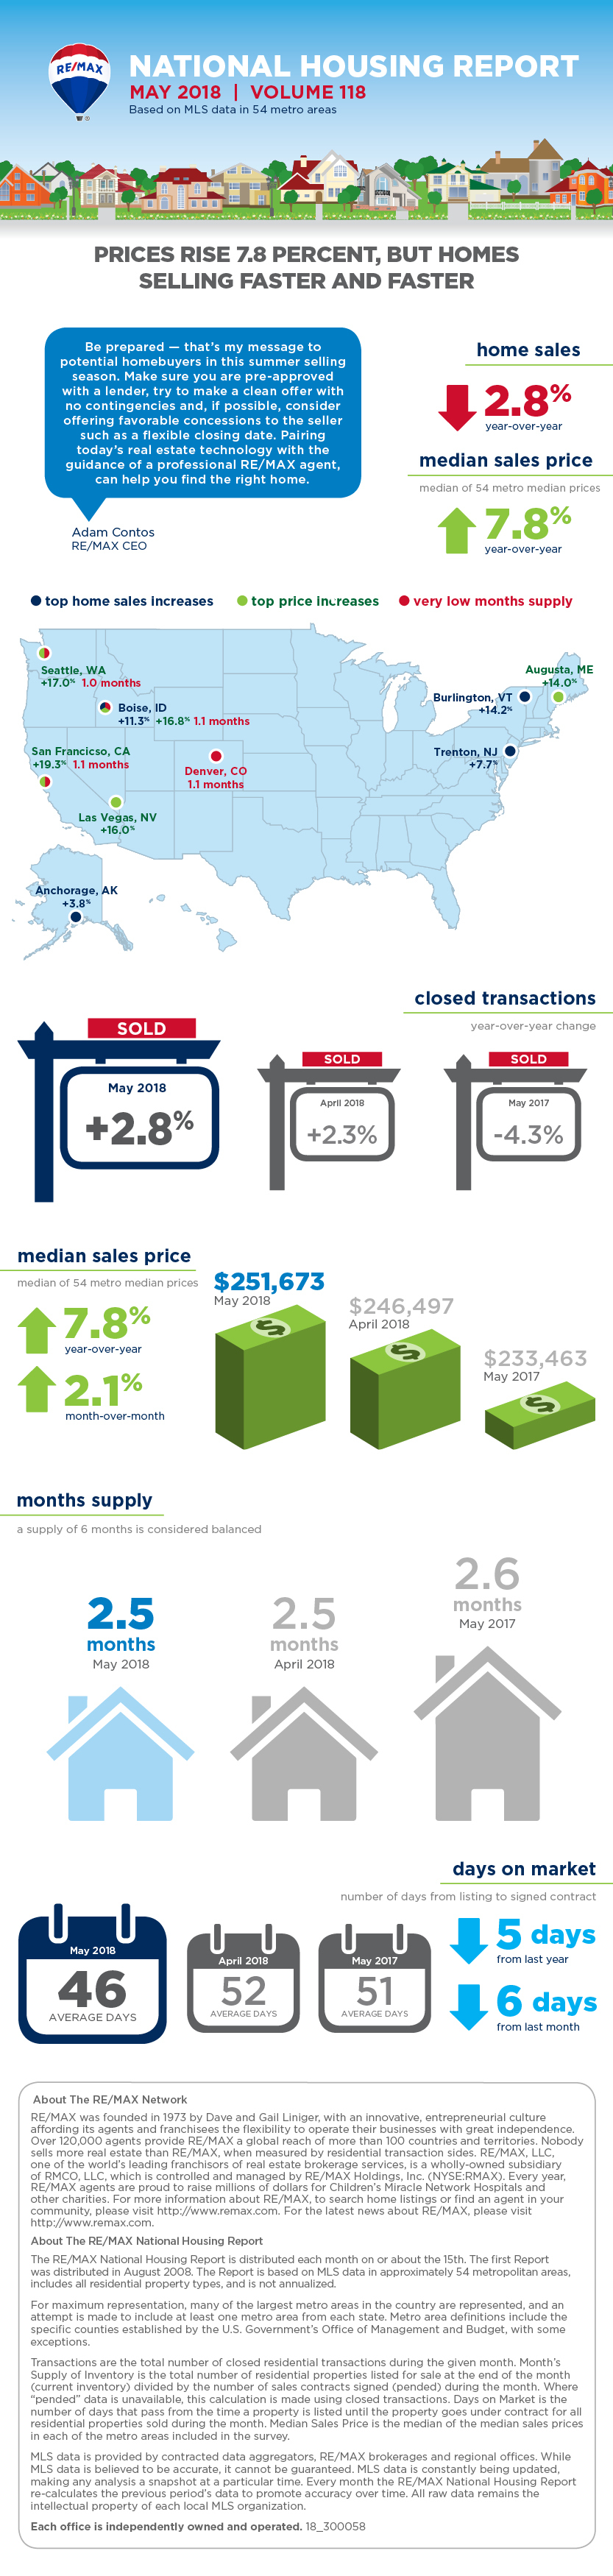 RE/MAX National Housing Report Infographic May 2018